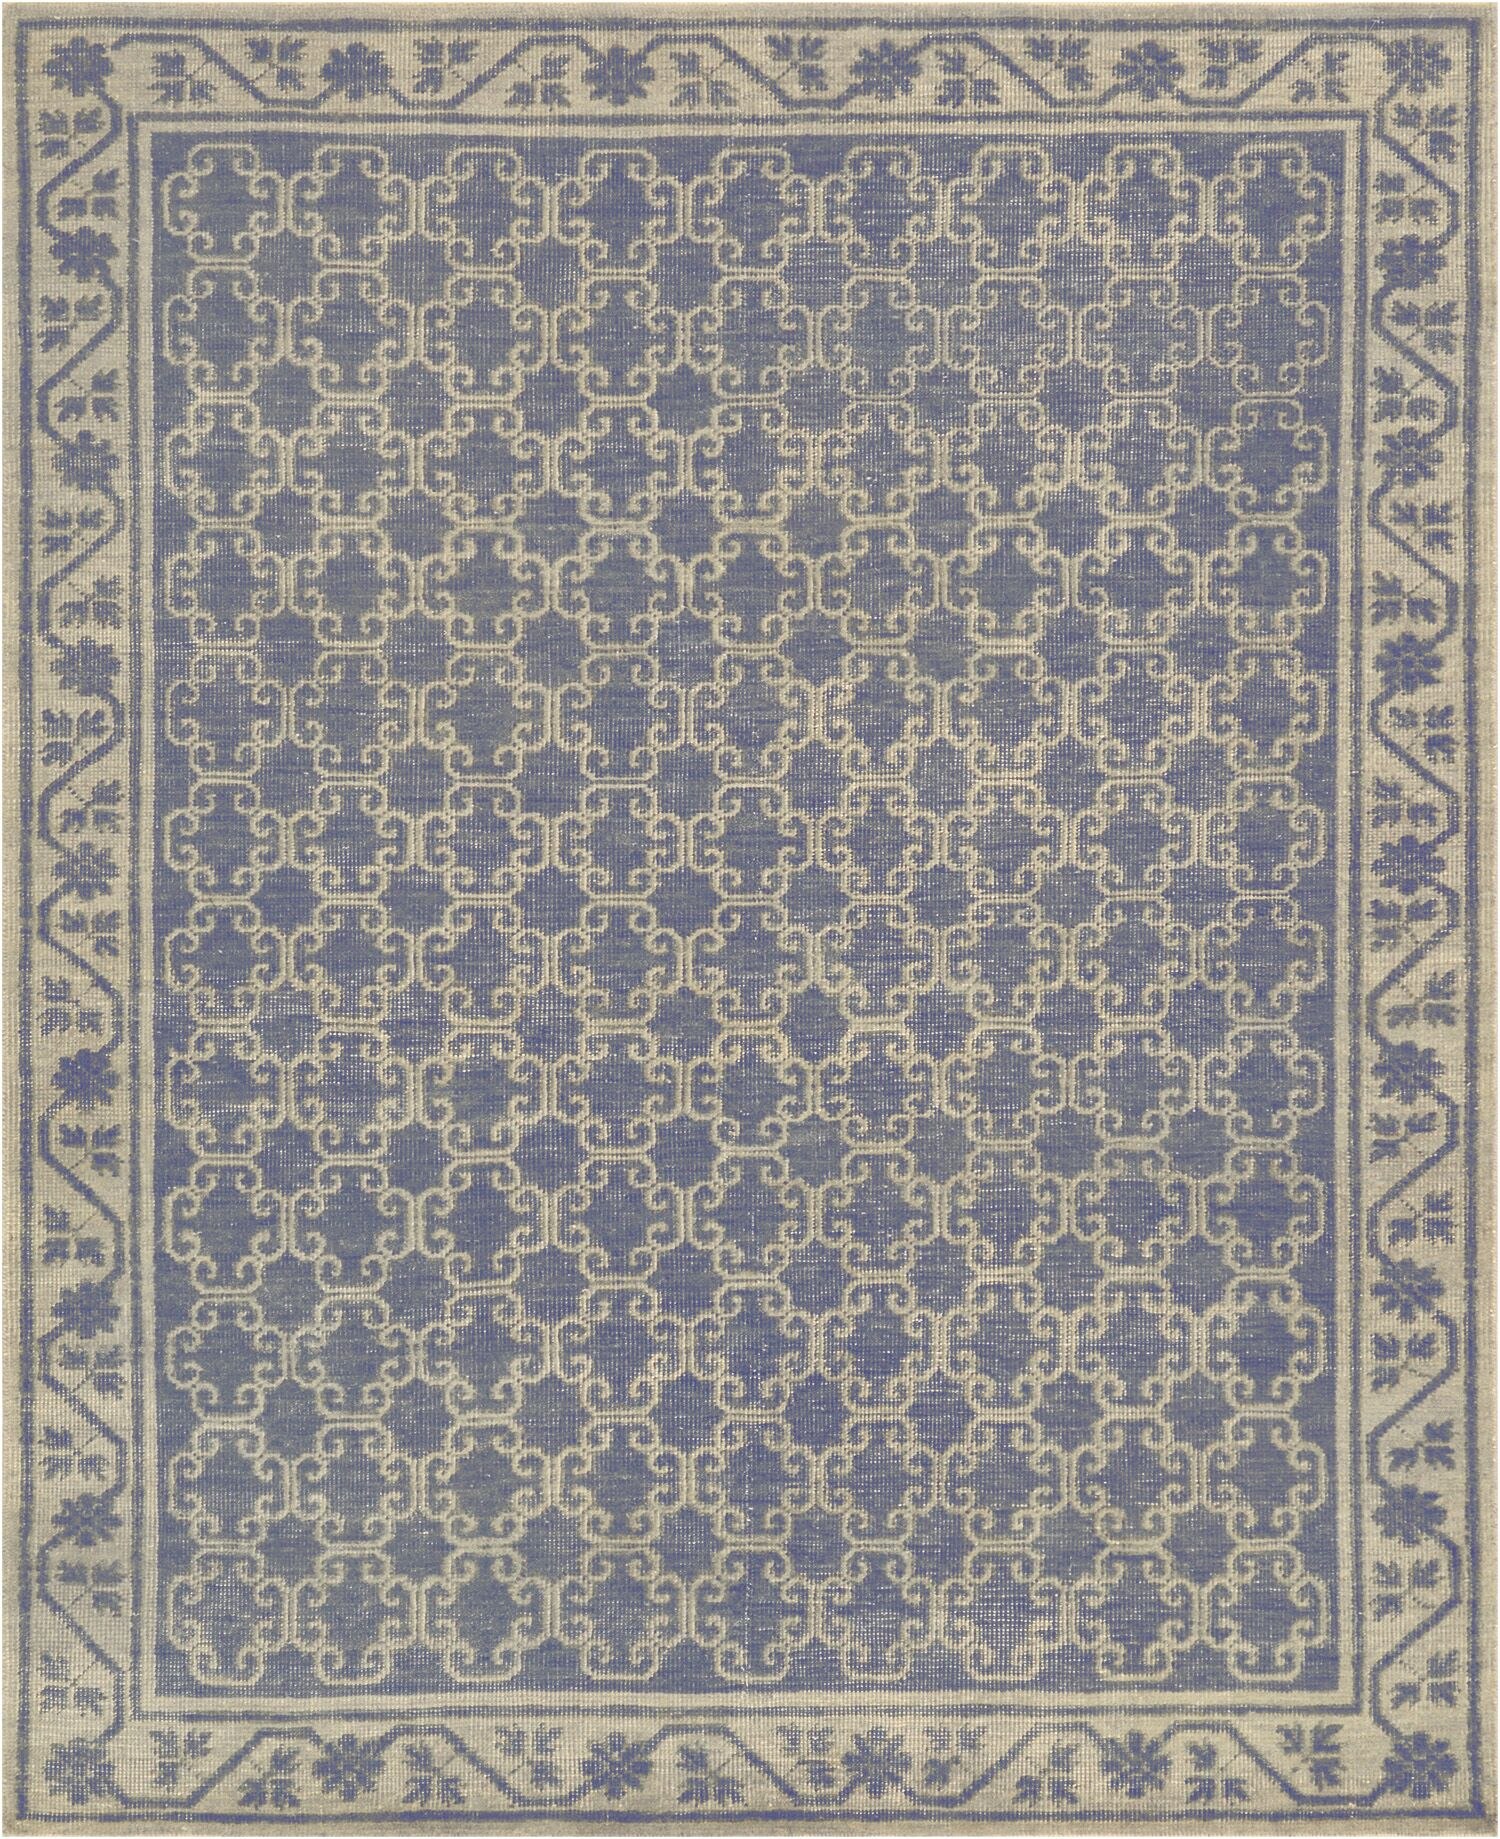 One-of-a-Kind Khotan Fine Hand-Knotted Wool Blue Indoor Area Rug